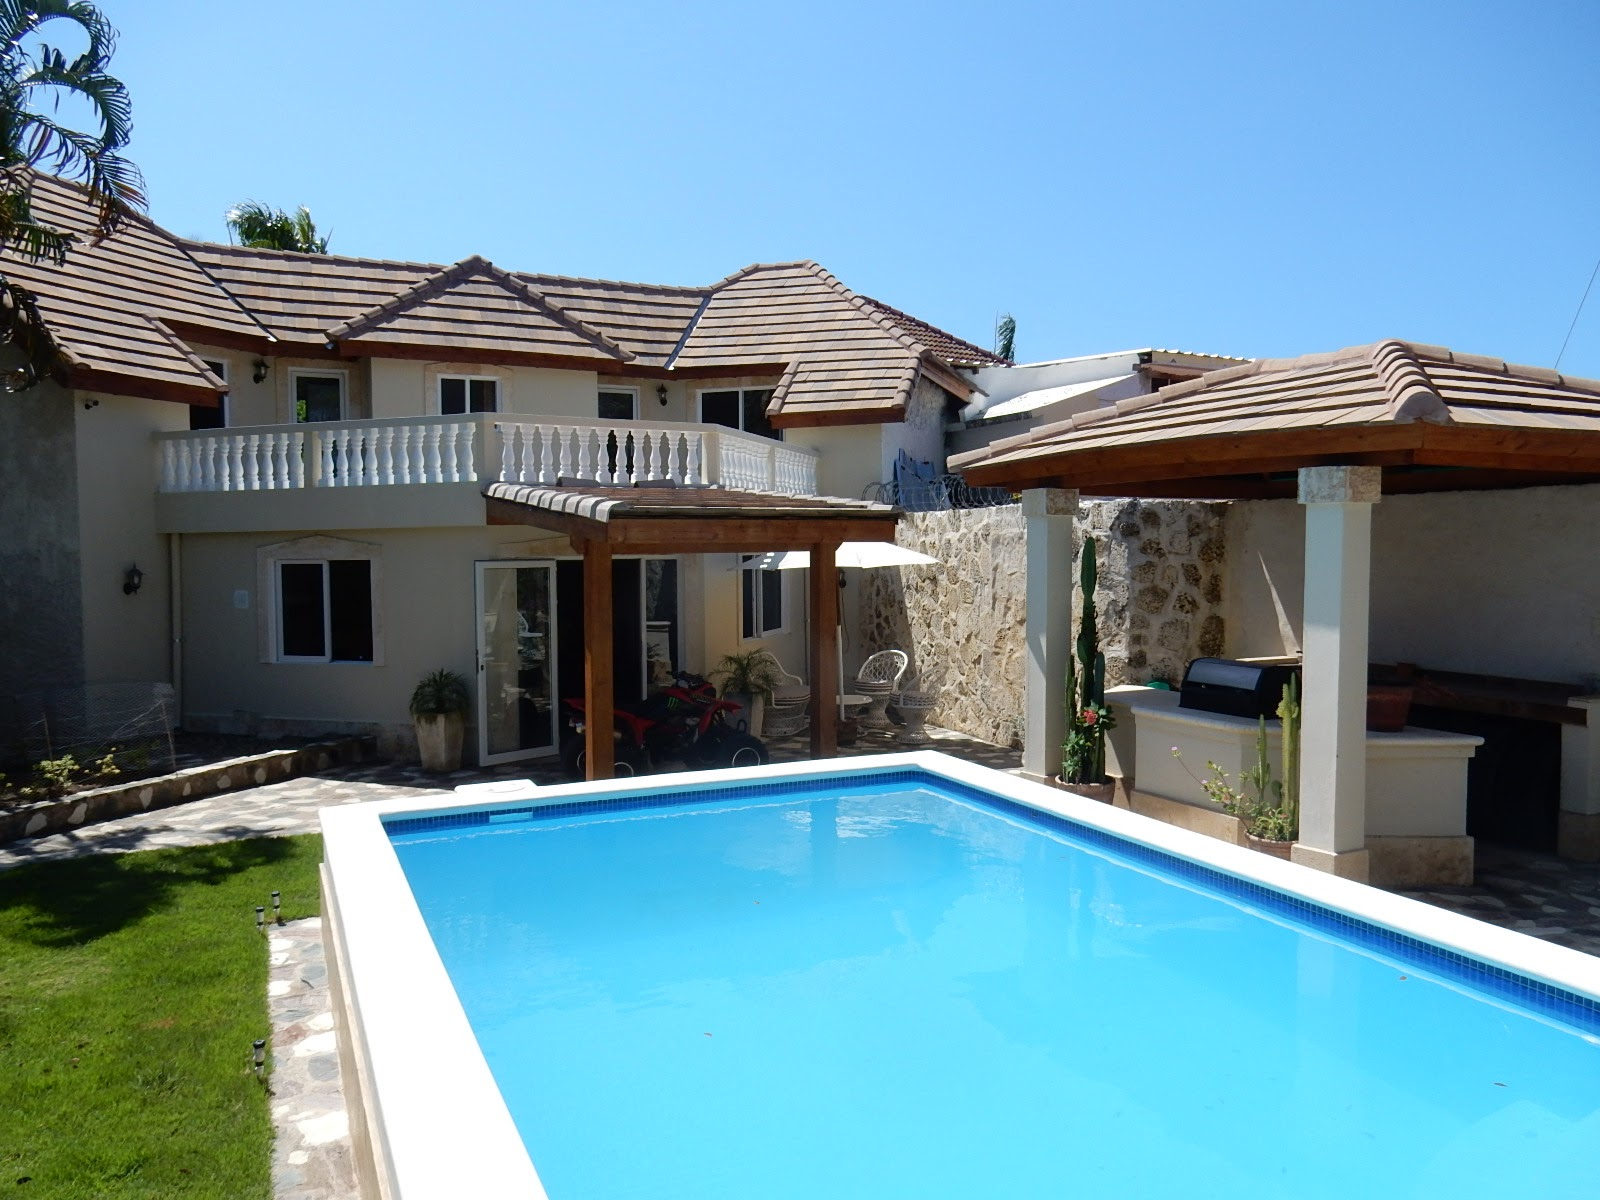 SV1046 - Cozy house with swimming pool